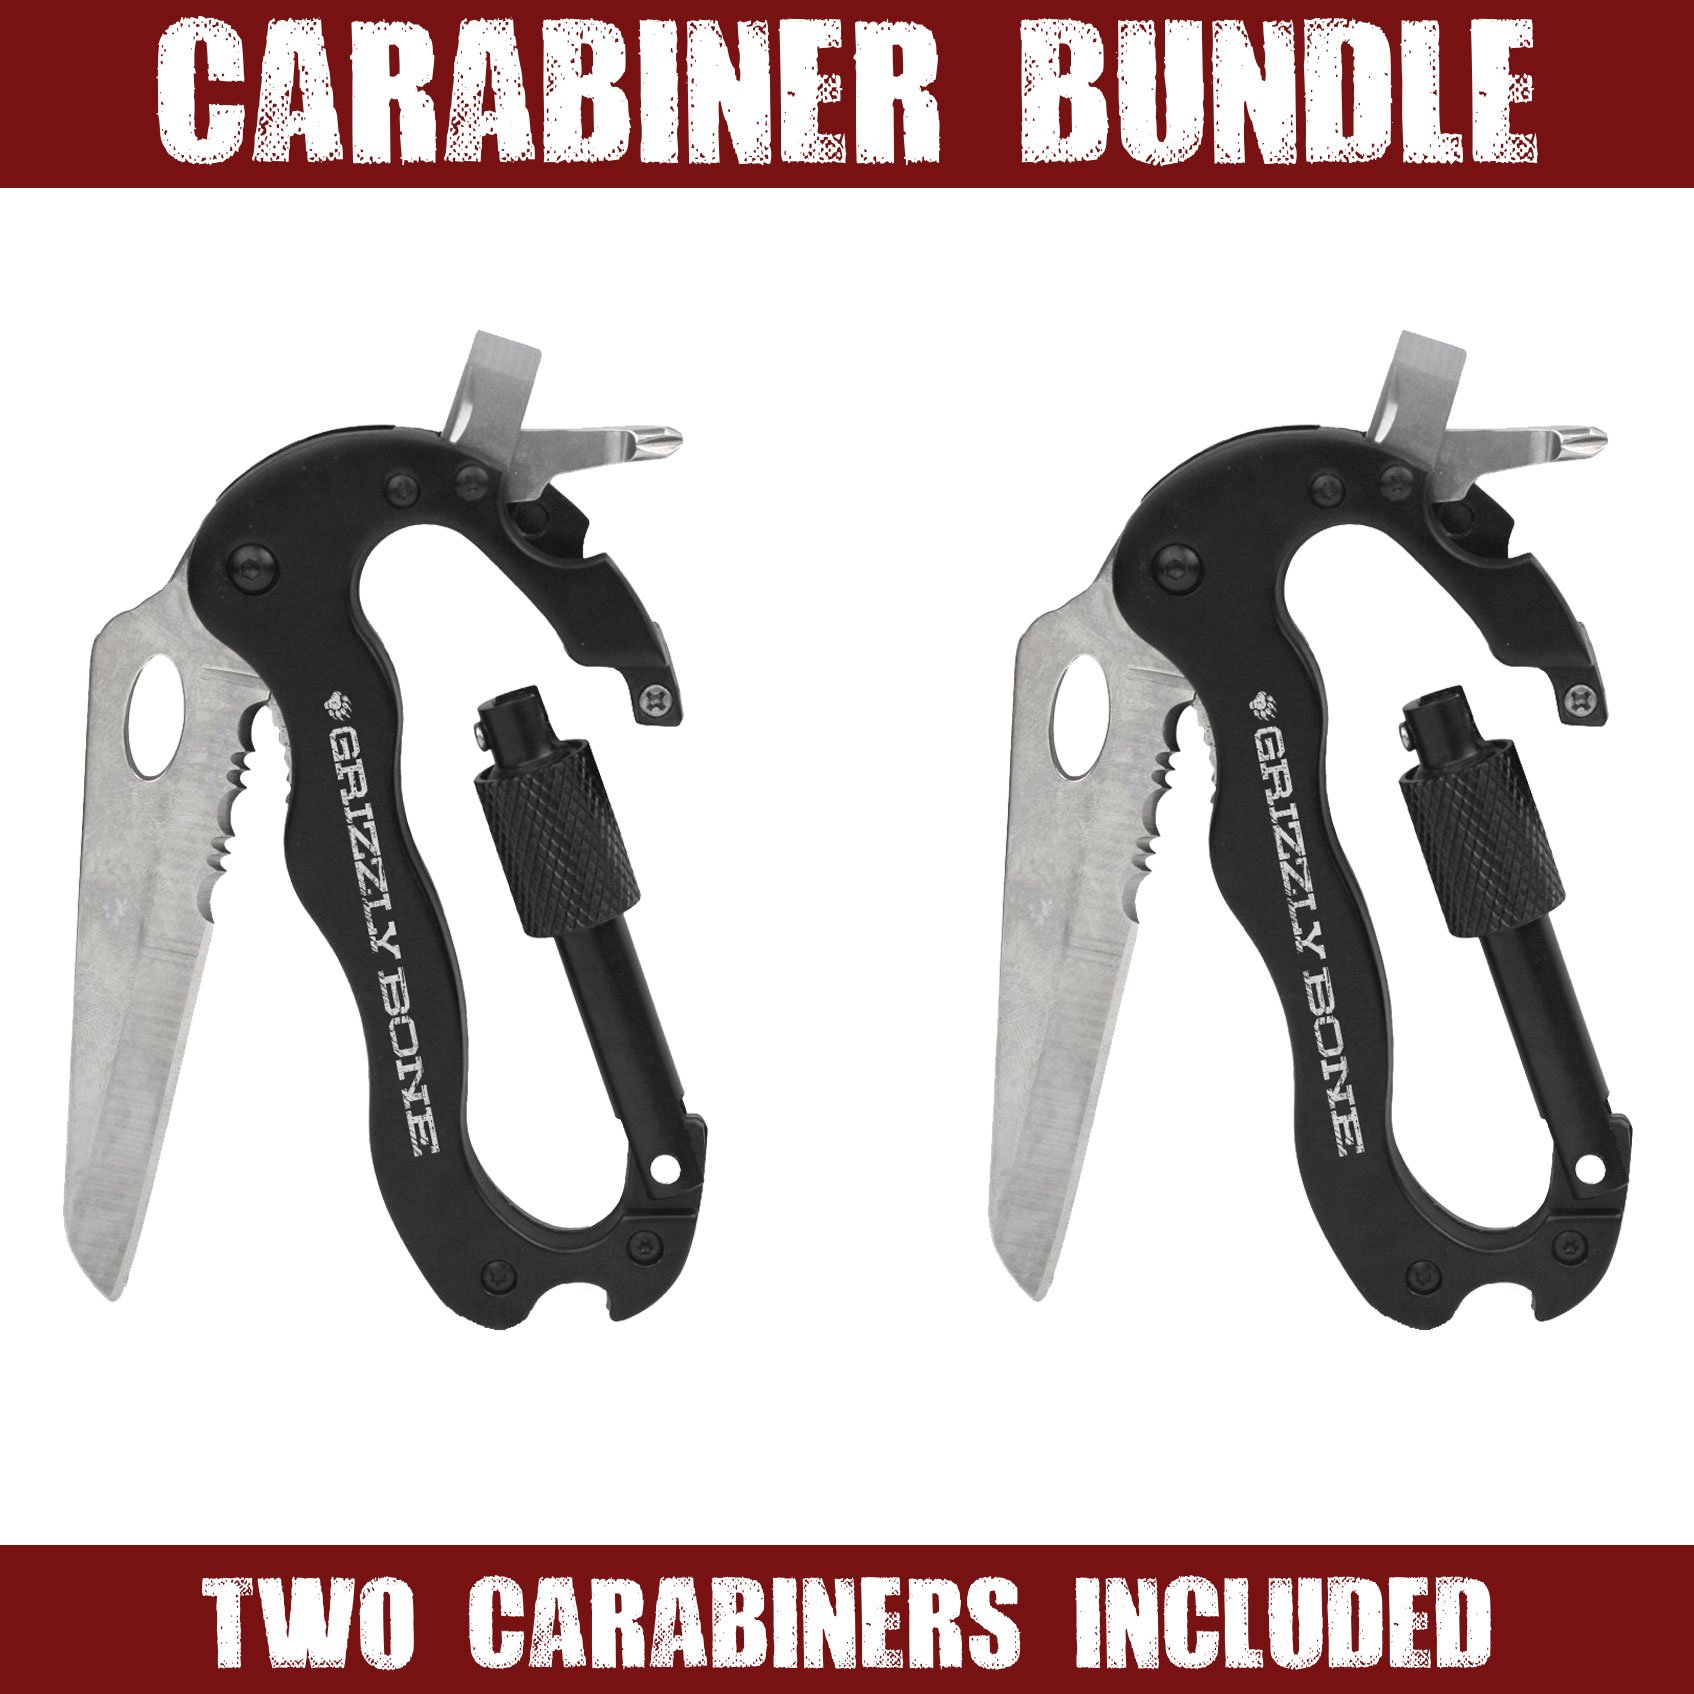 2 Pack - 5-in-1 Multitool Carabiners Knife with Bottle Opener, Screwdrivers and locking carabiner perfect for Zombie Survival Kit